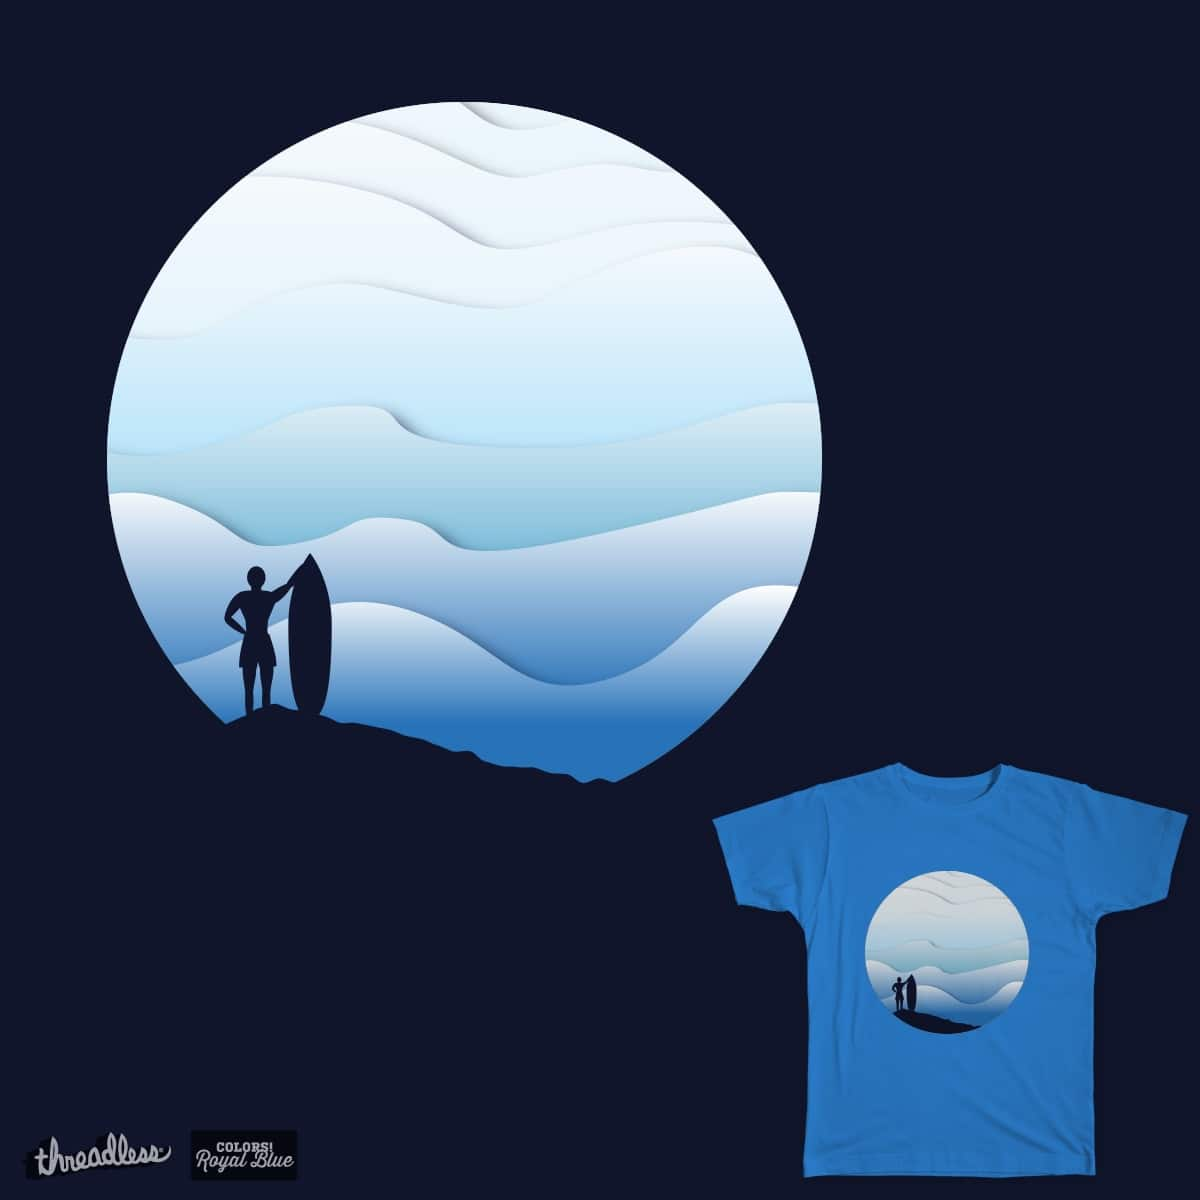 Surfer by Zuz_ana on Threadless